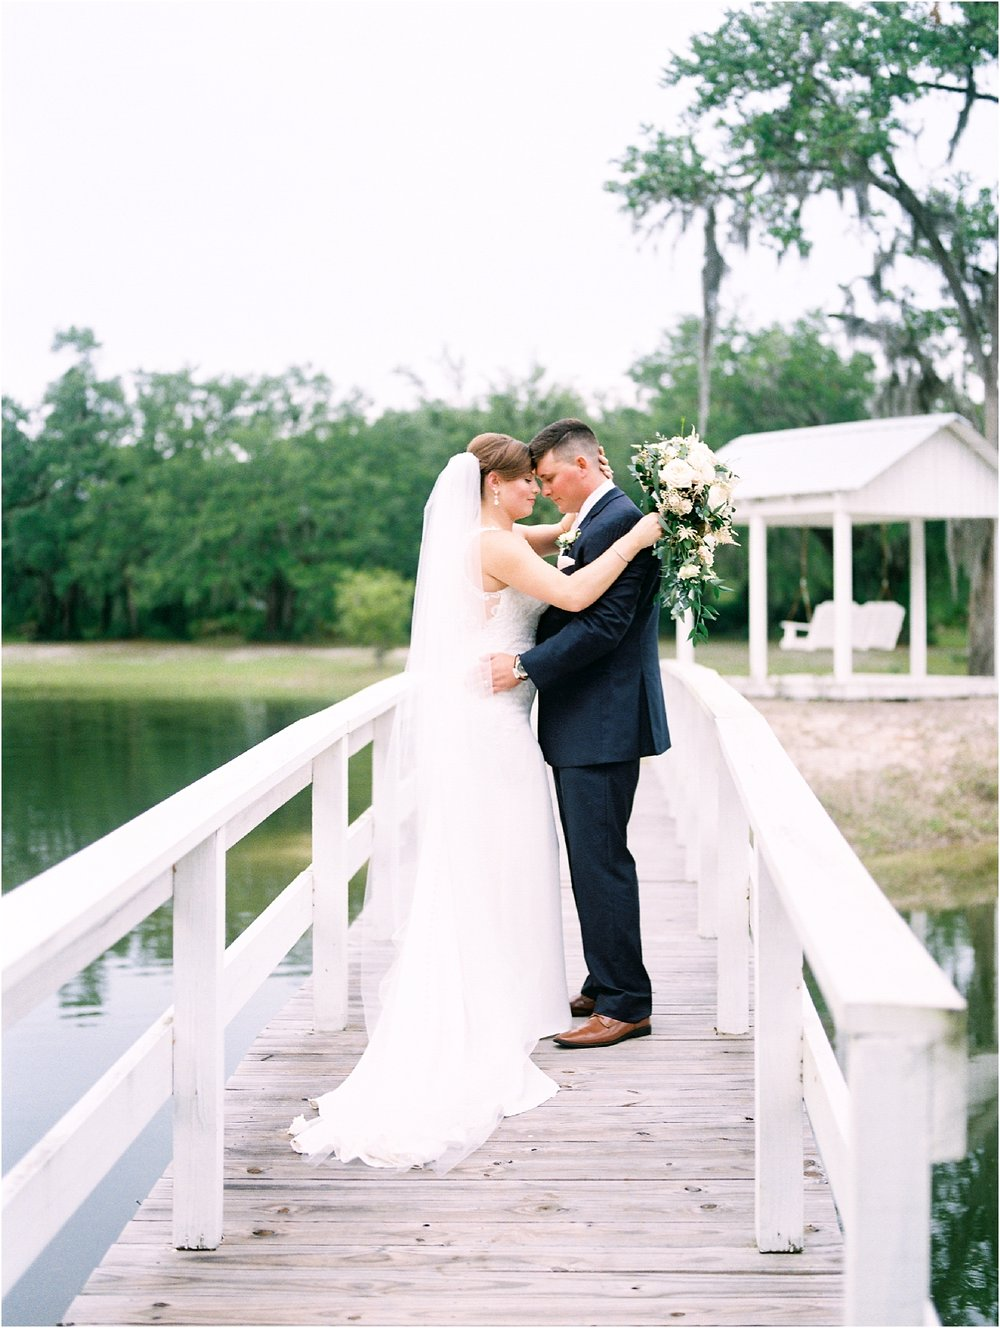 Lisa Silva Photography- Ponte Vedra Beach, St. Augustine and Jacksonville, Florida Fine Art Film Wedding and Boudoir Photography- Elegant Blush and Navy Wedding at Chandler Oaks Barn in St. Augustine, Florida_0085.jpg